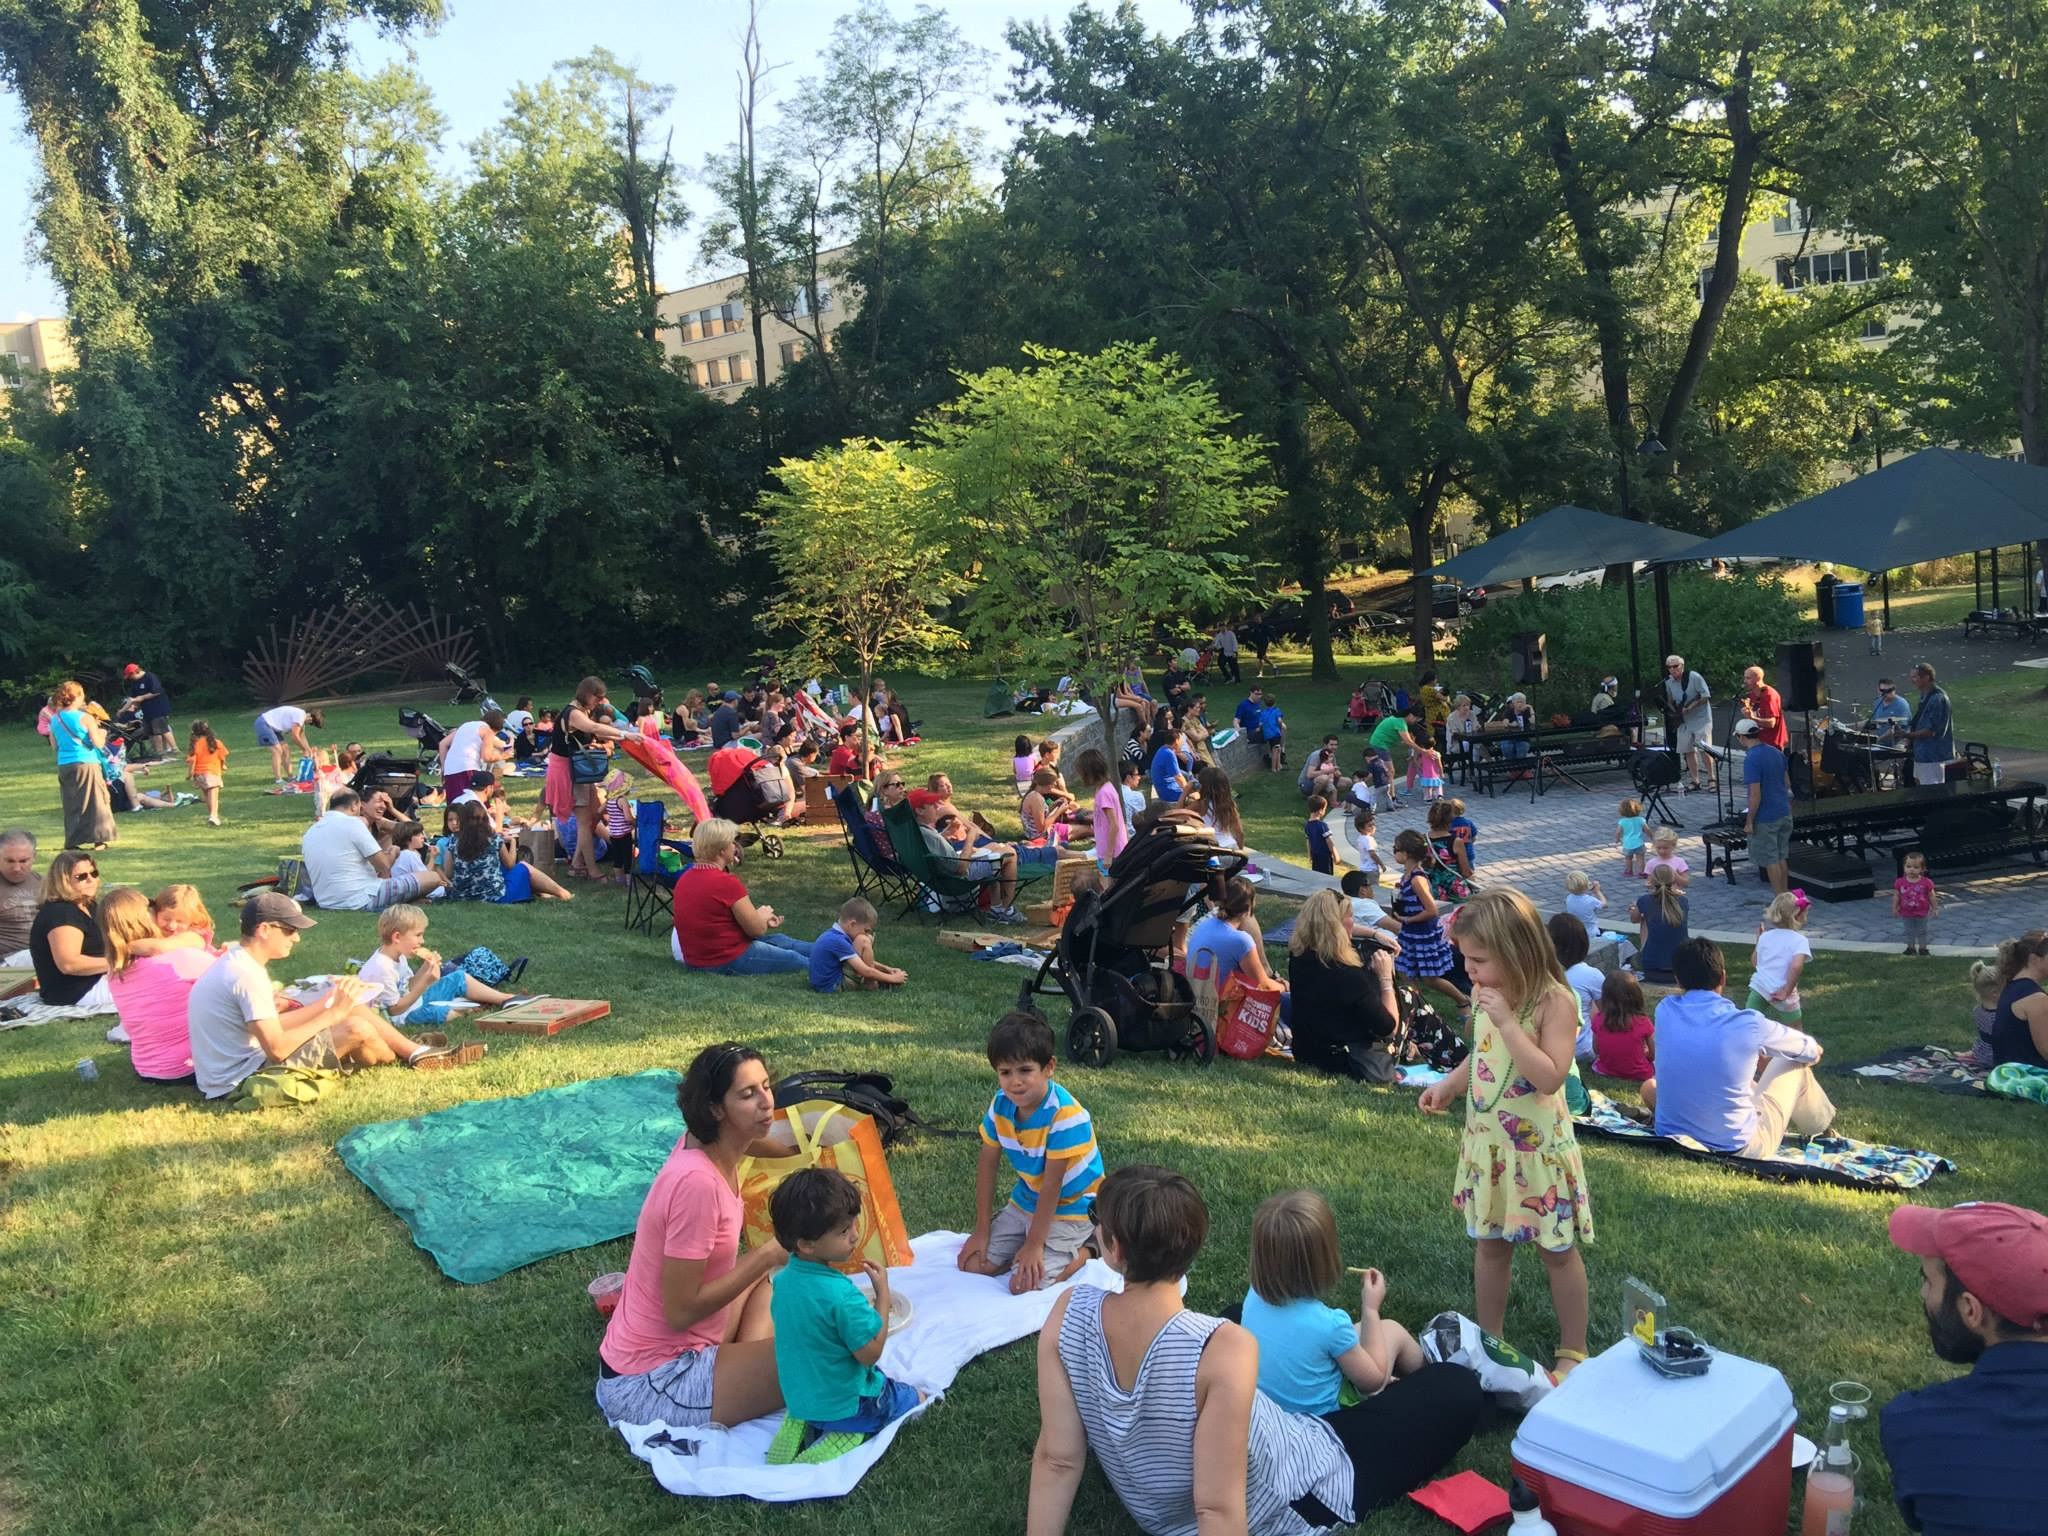 A large crowd enjoyed the music, the food and the perfect weather.